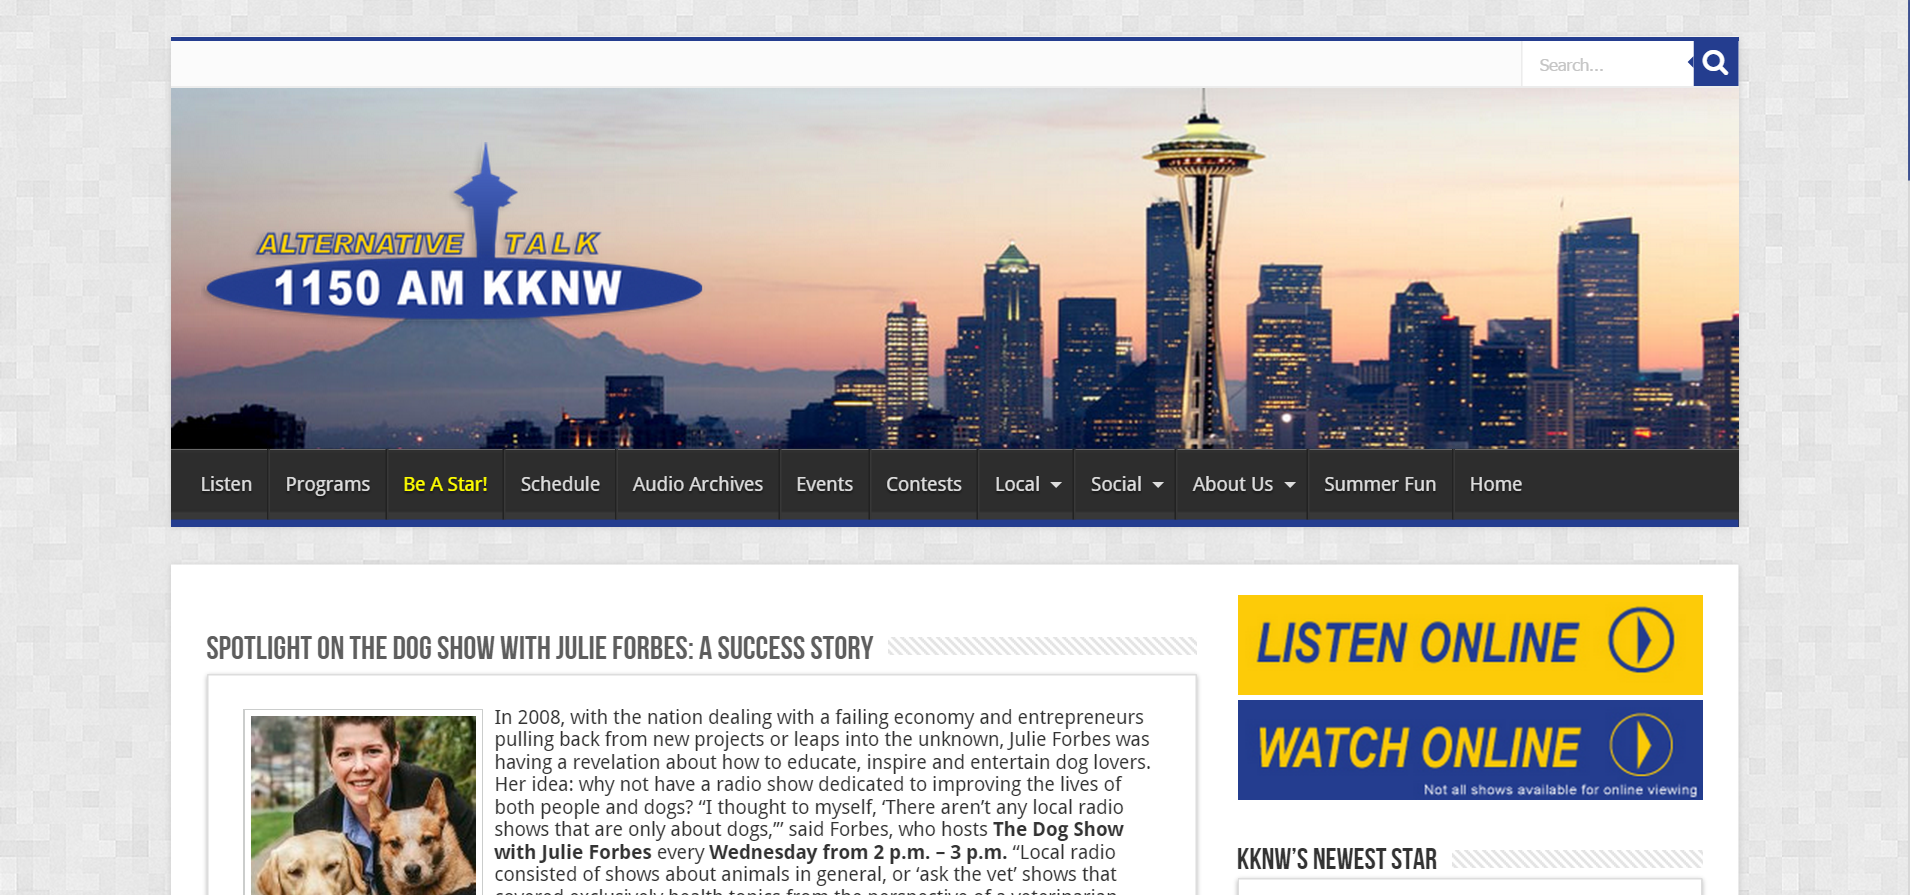 kknw1150